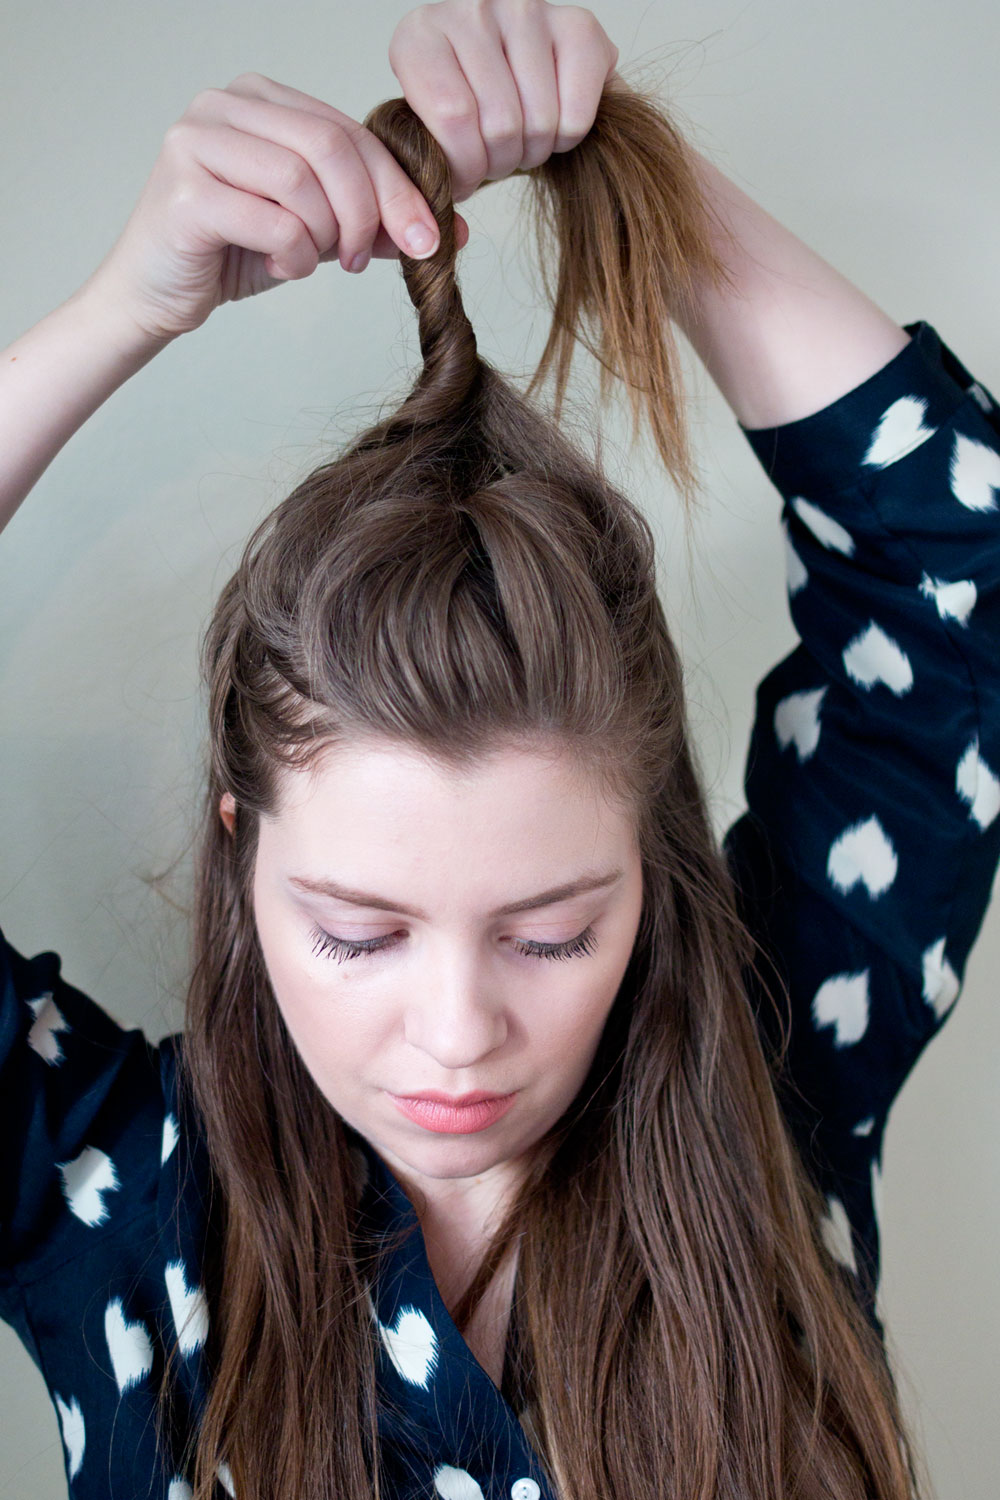 Half Top Knot Tutorial // Twist Hair to Create Bun // Hello Rigby Seattle Beauty & Hair Blog